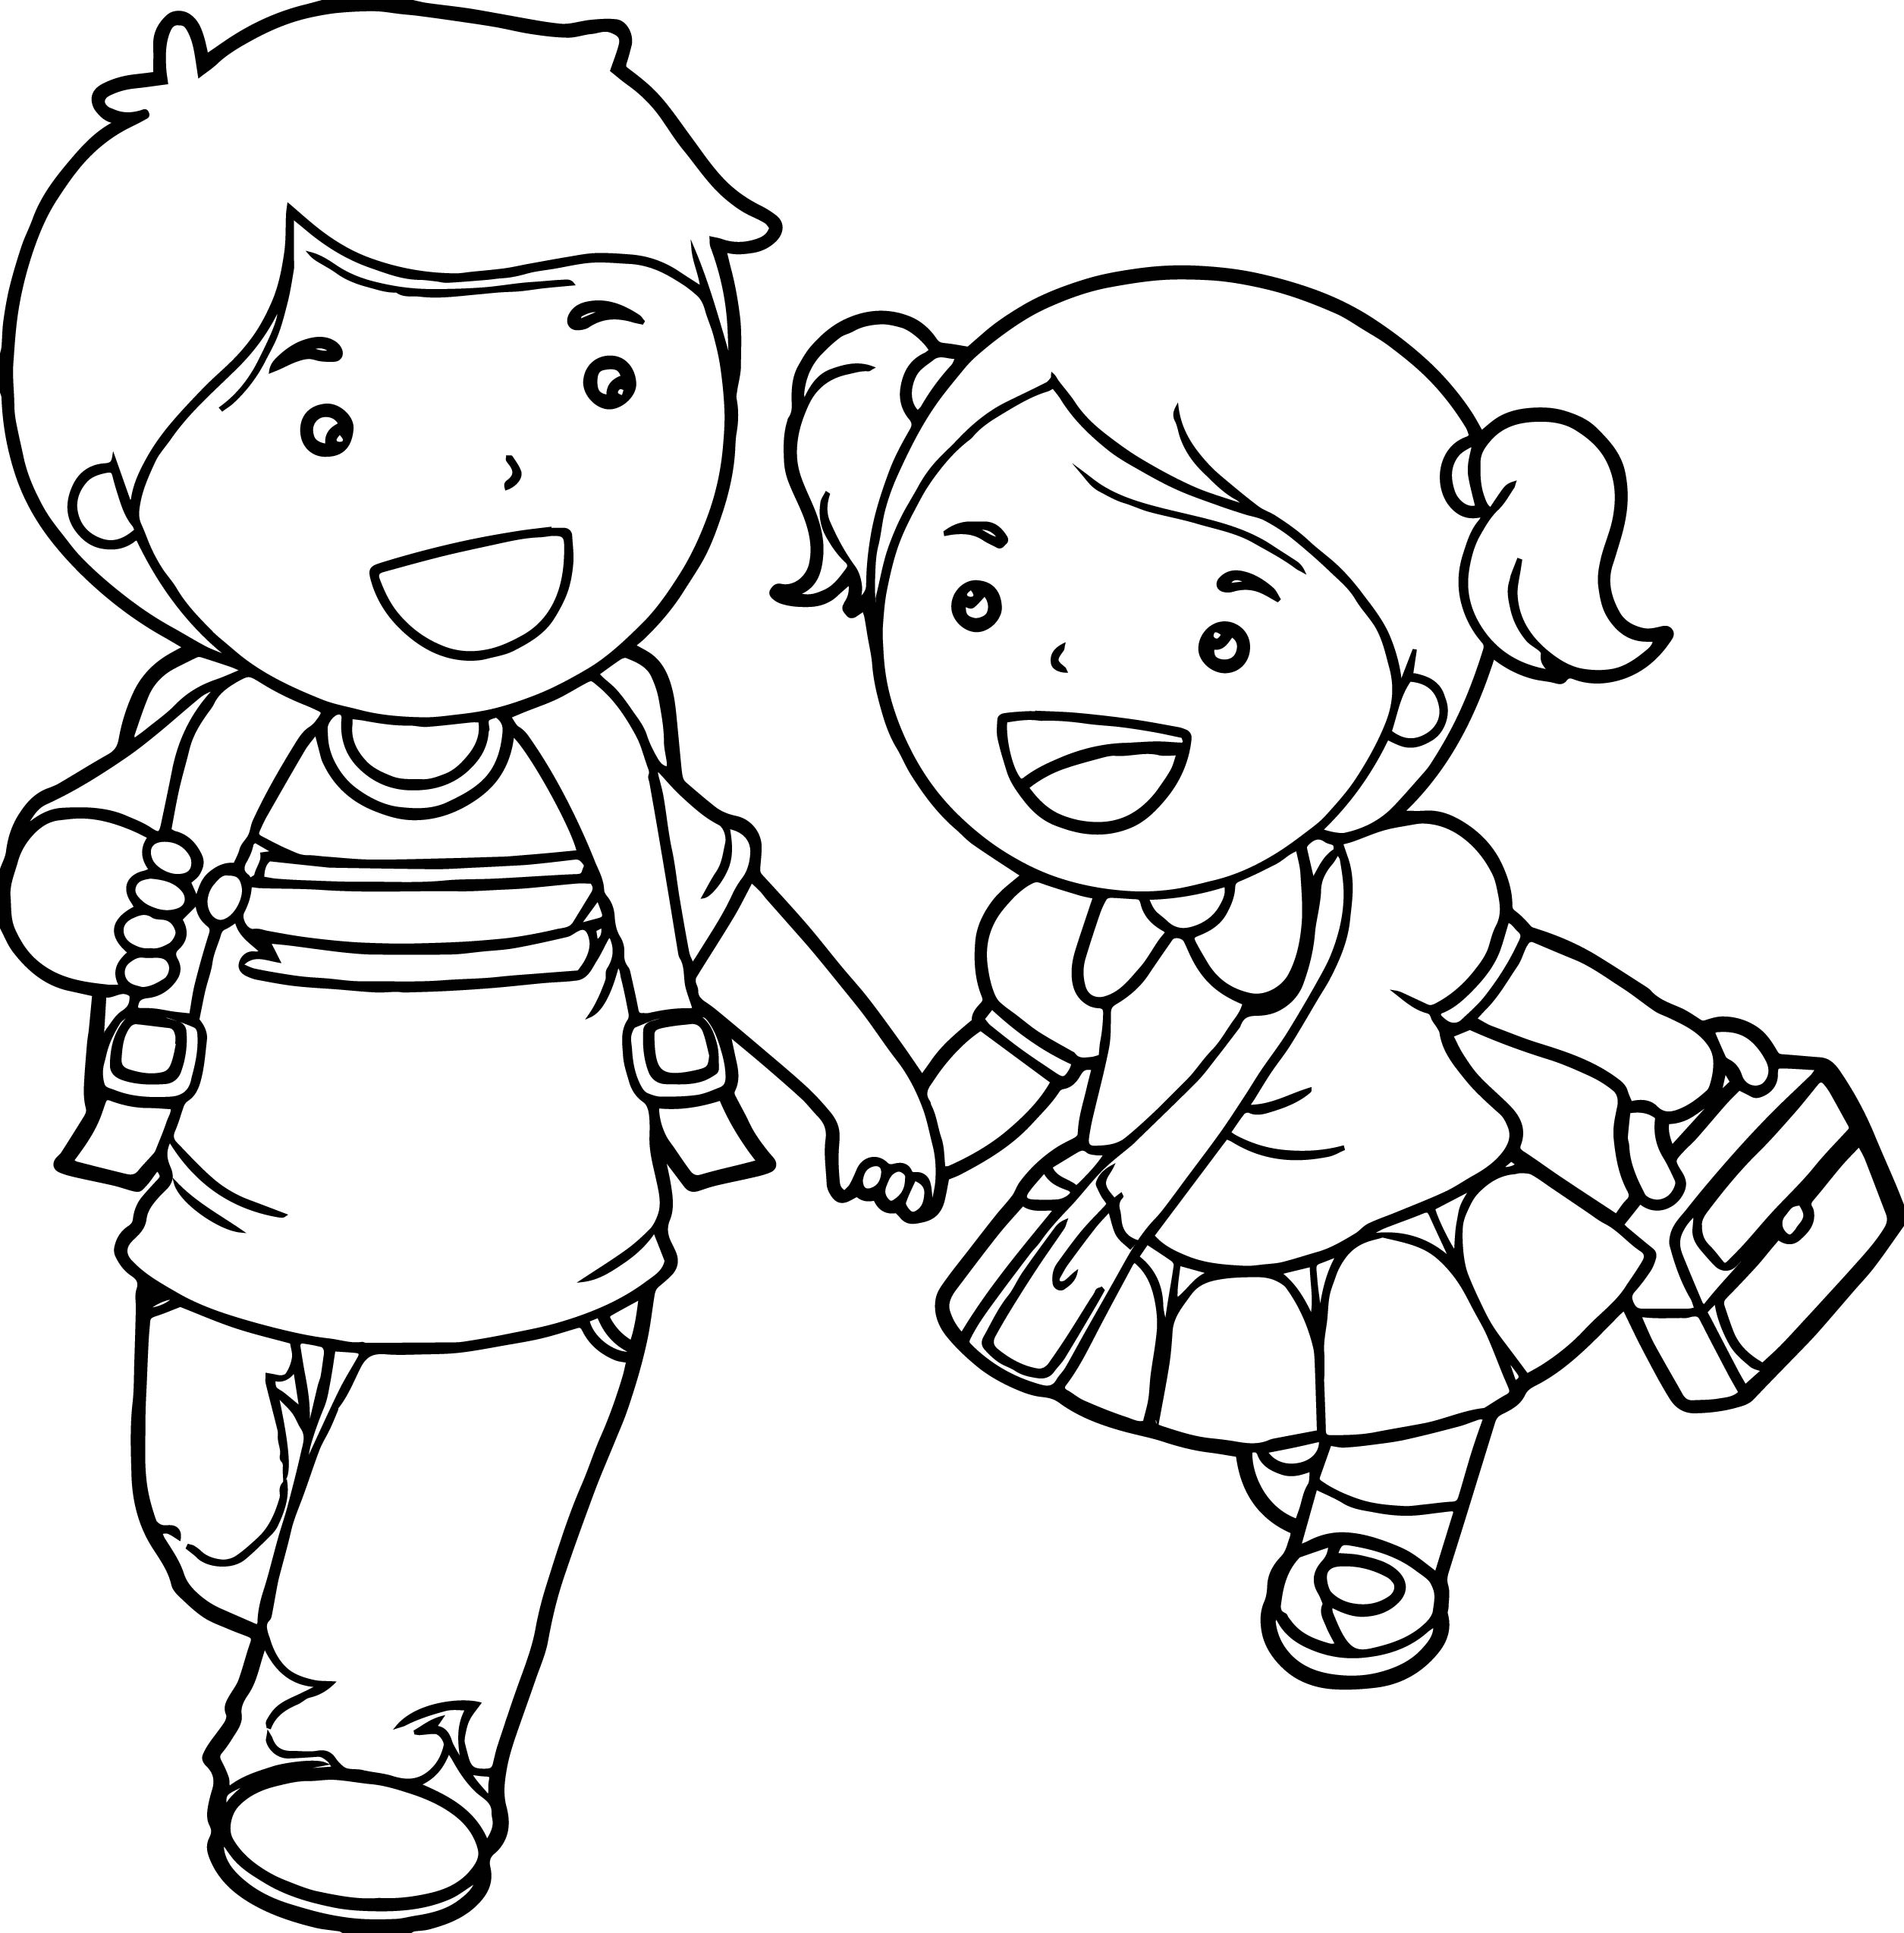 Boy And Girl Coloring Pages Boy And Girl Lets Go School Coloring Page Wecoloringpage Birijus Com